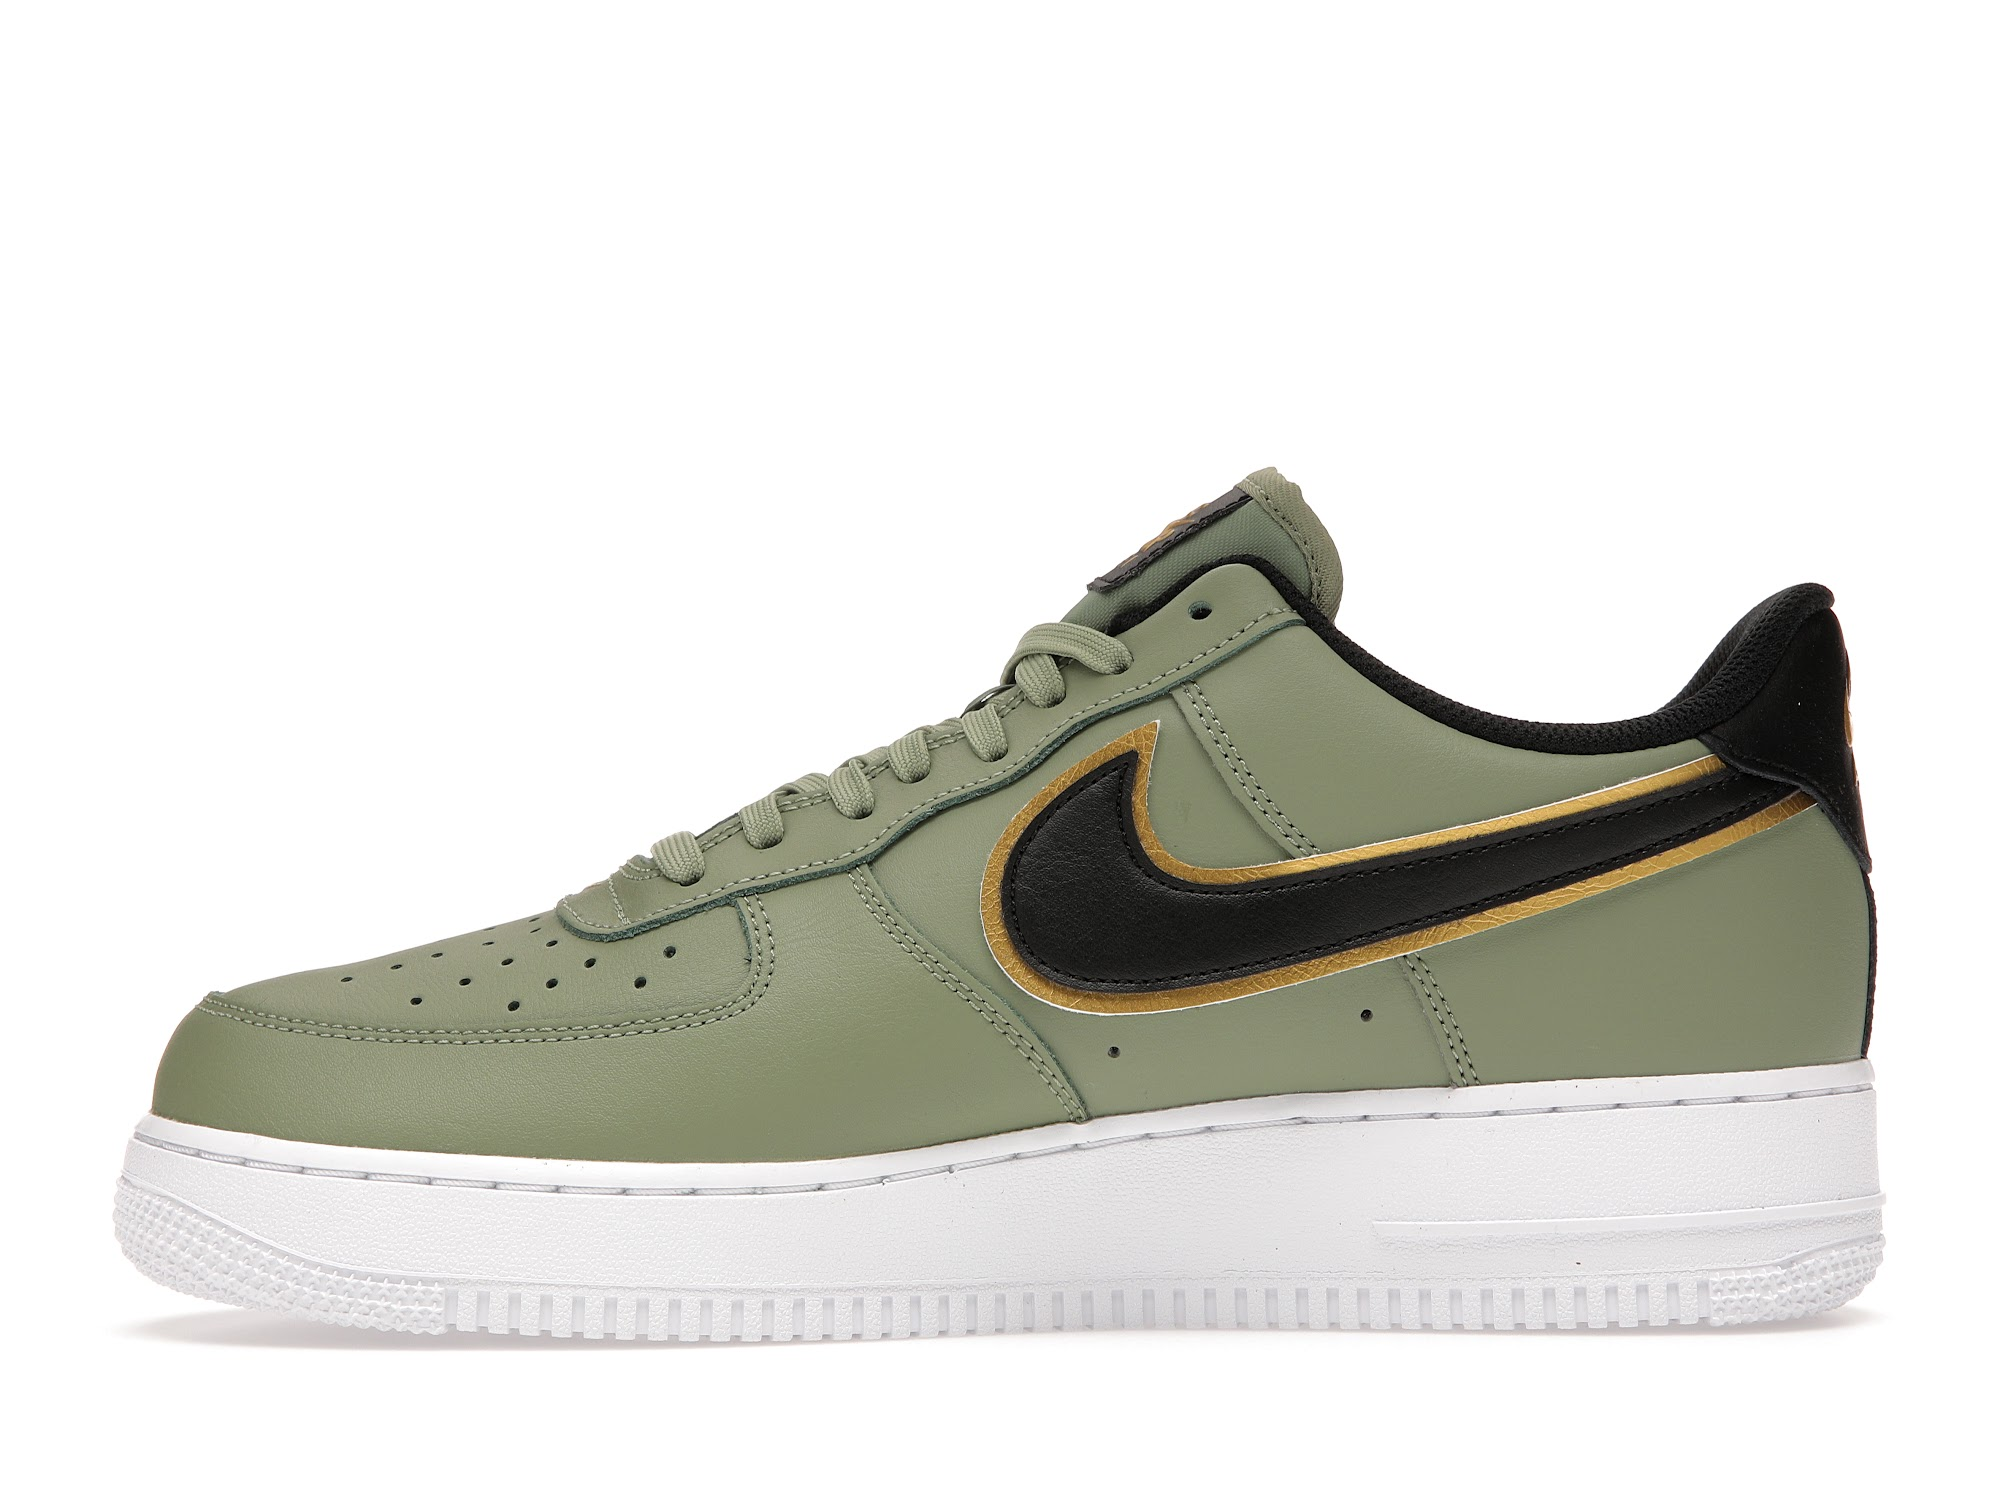 Nike Air Force 1 Low 07 LV8 Double Swoosh Olive Gold Black